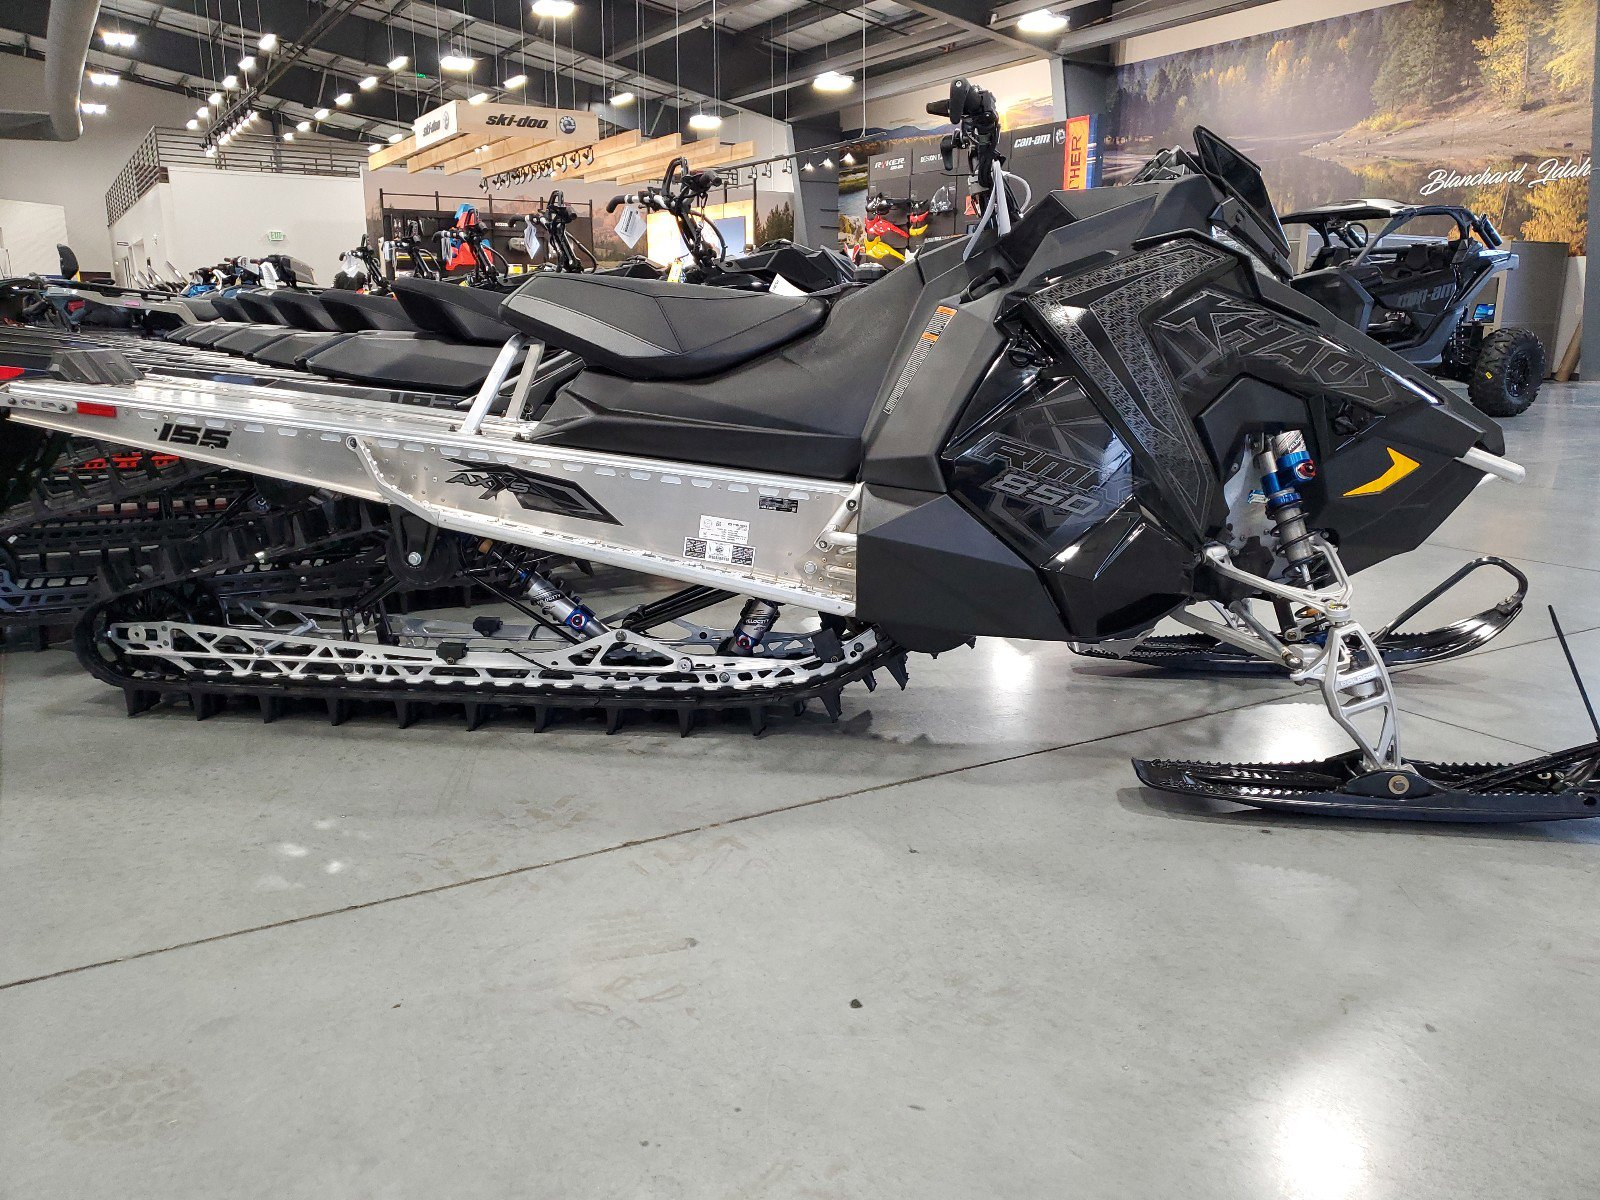 New 2021 POLARIS RMK 850 KHAOS 155 2.6